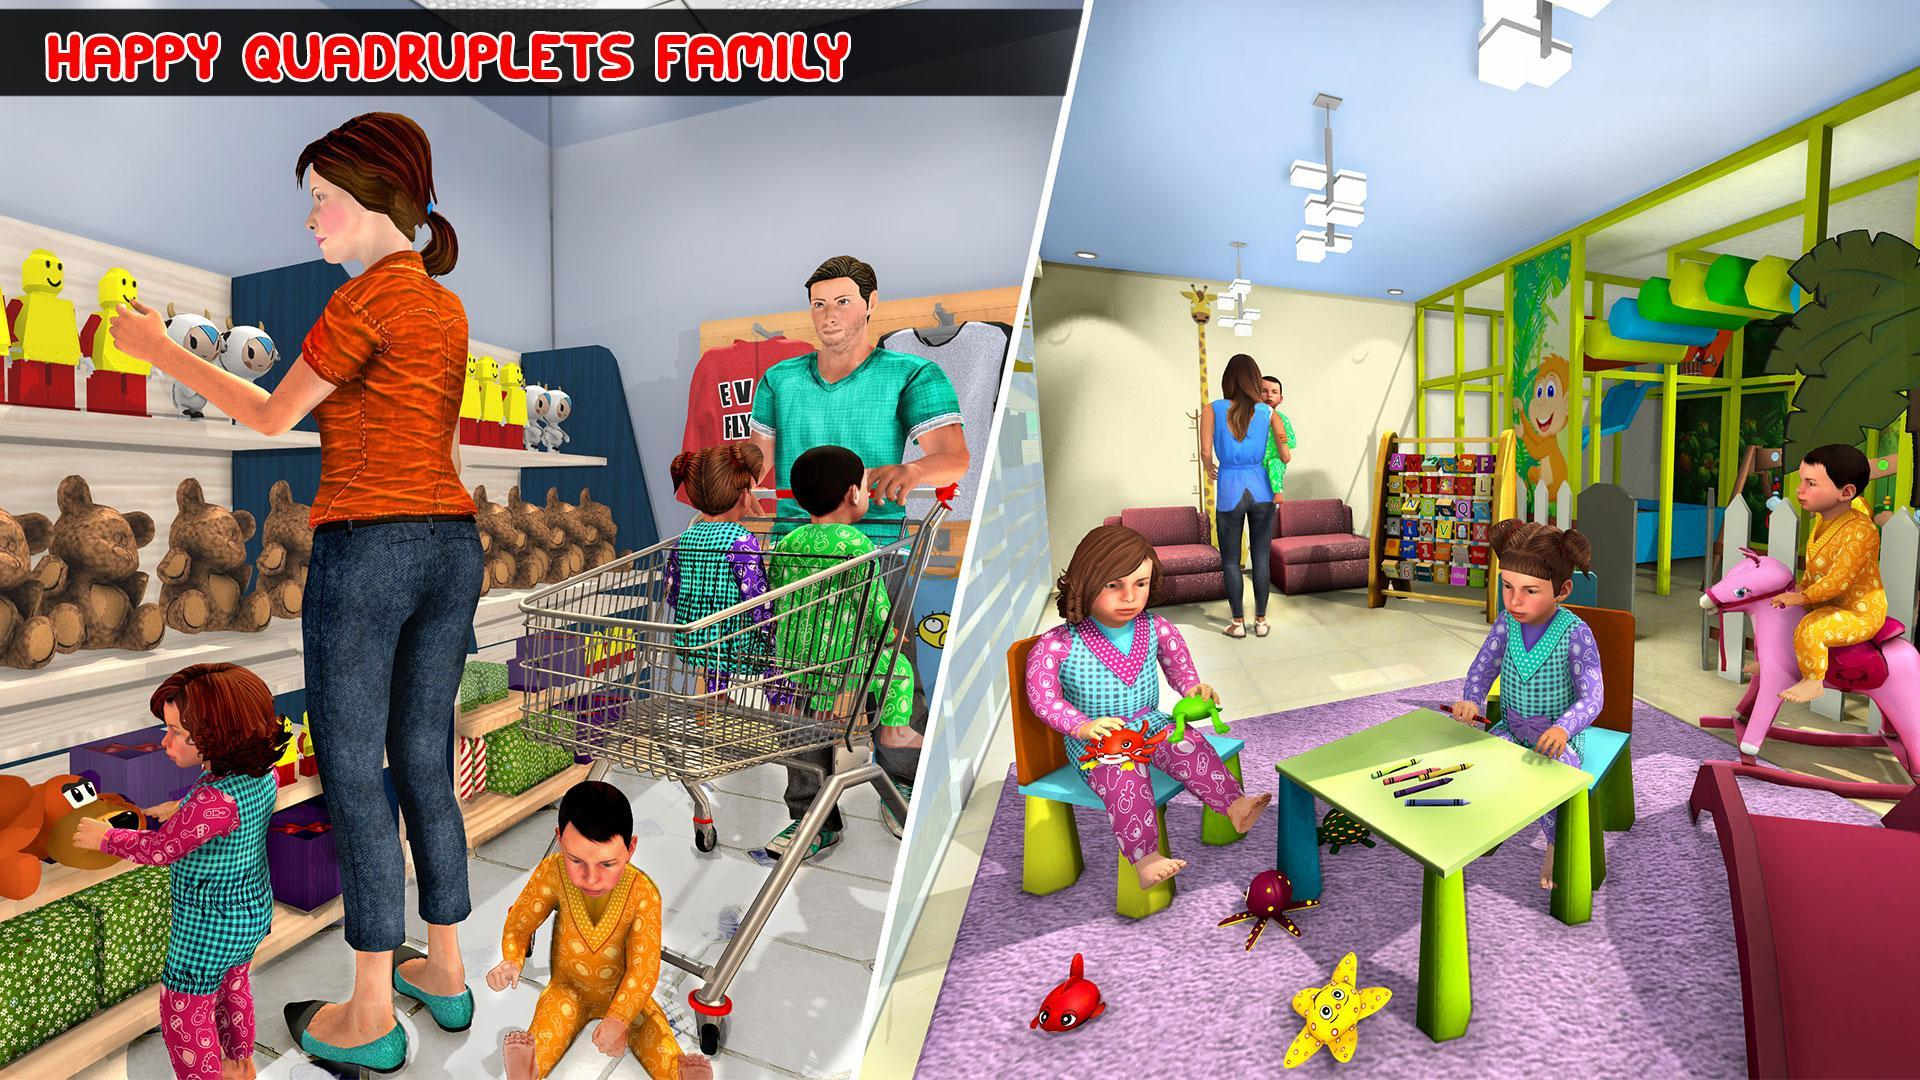 Virtual Mother Baby Quadruplets Family Simulator 1.0.9 Screenshot 1